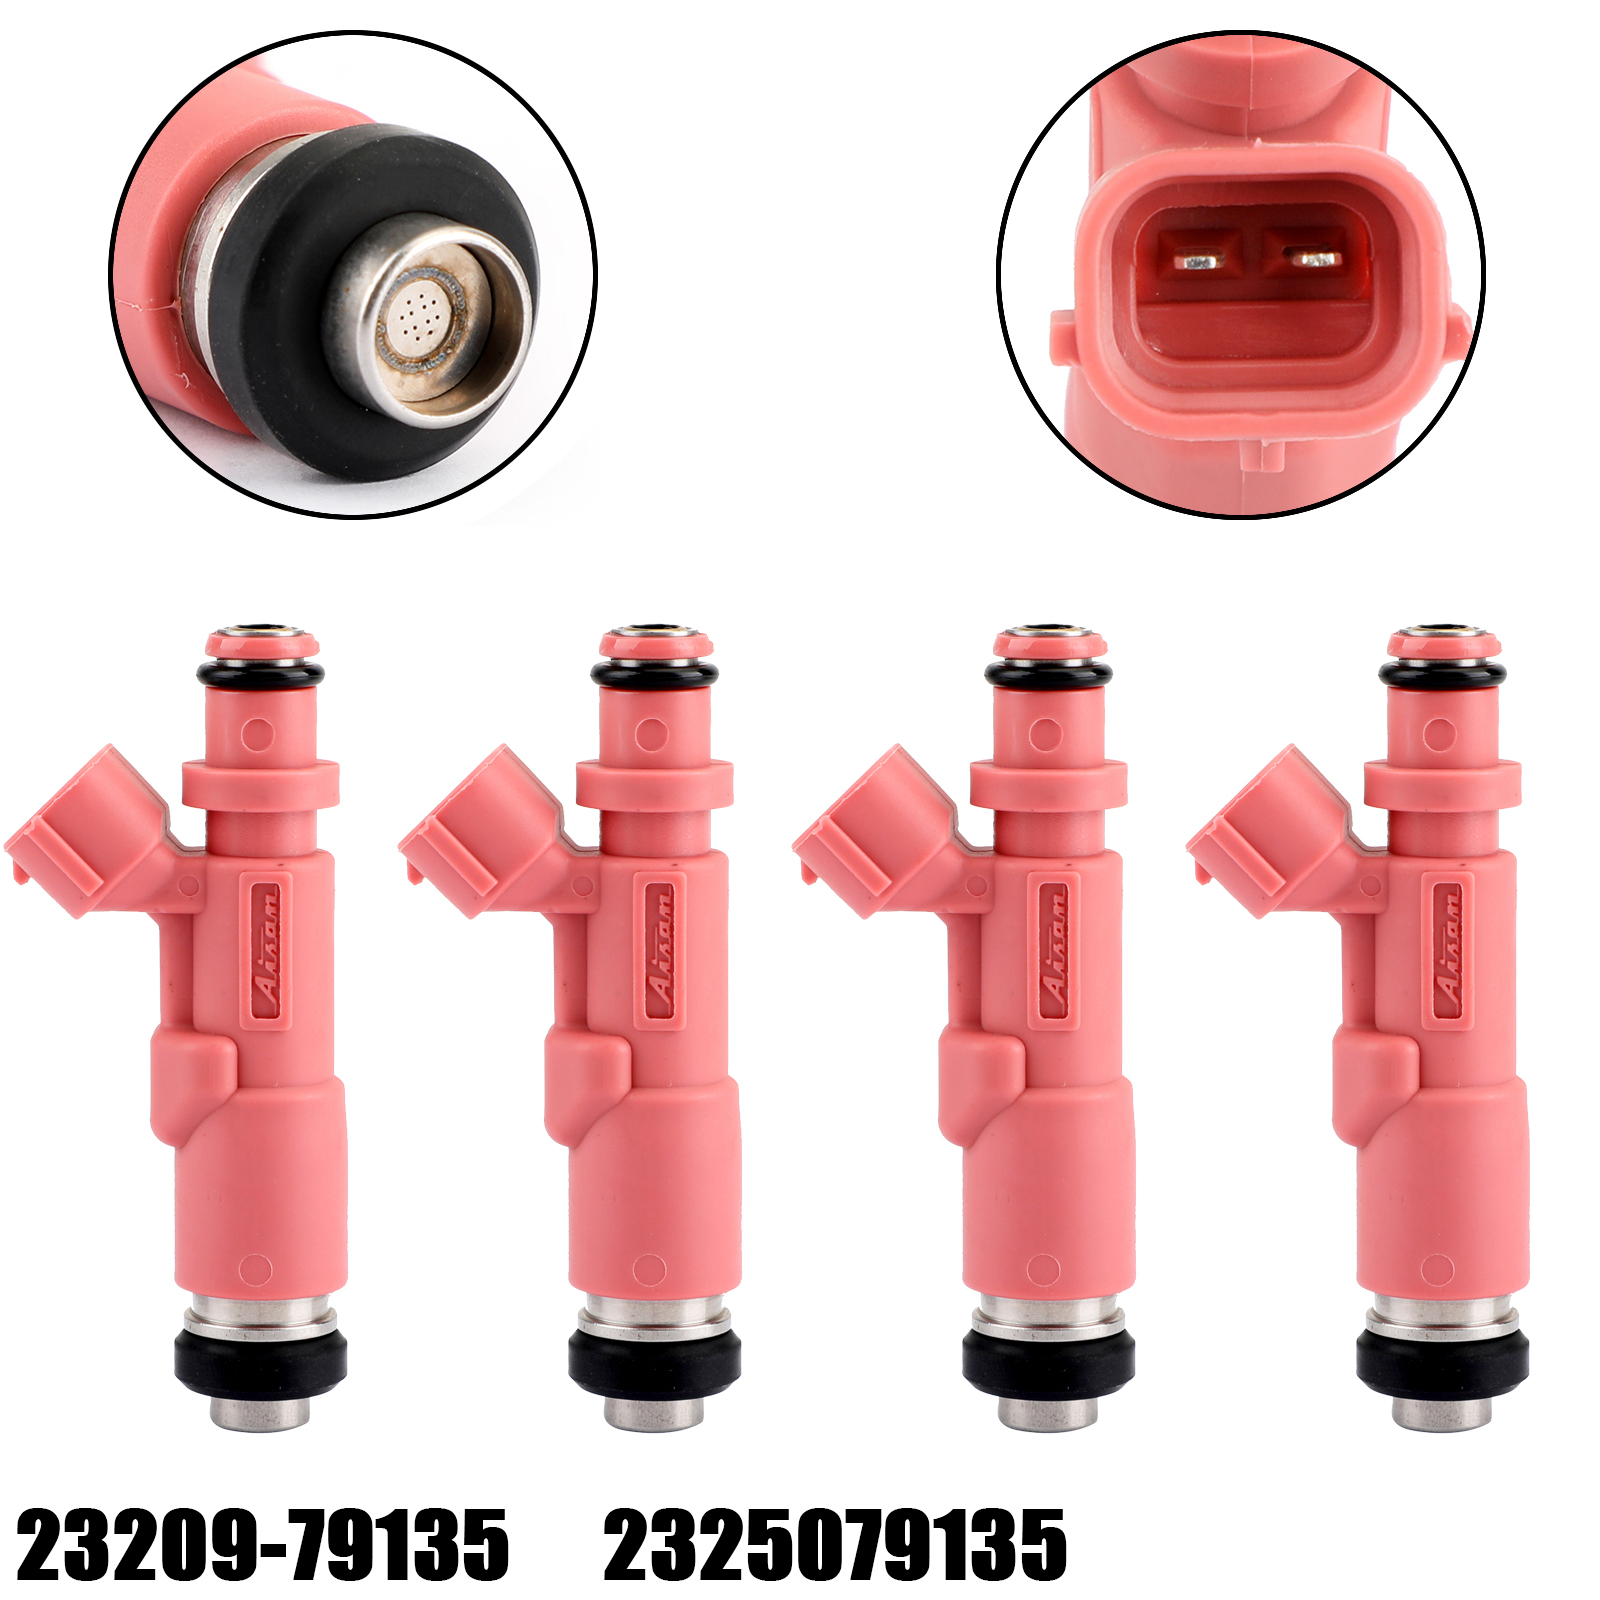 Areyourshop 4pcs New <strong>Fuel</strong> <strong>Injectors</strong> 23209-79135 for TOYOTA 4Runner Tacoma 2.7 2.4 L4